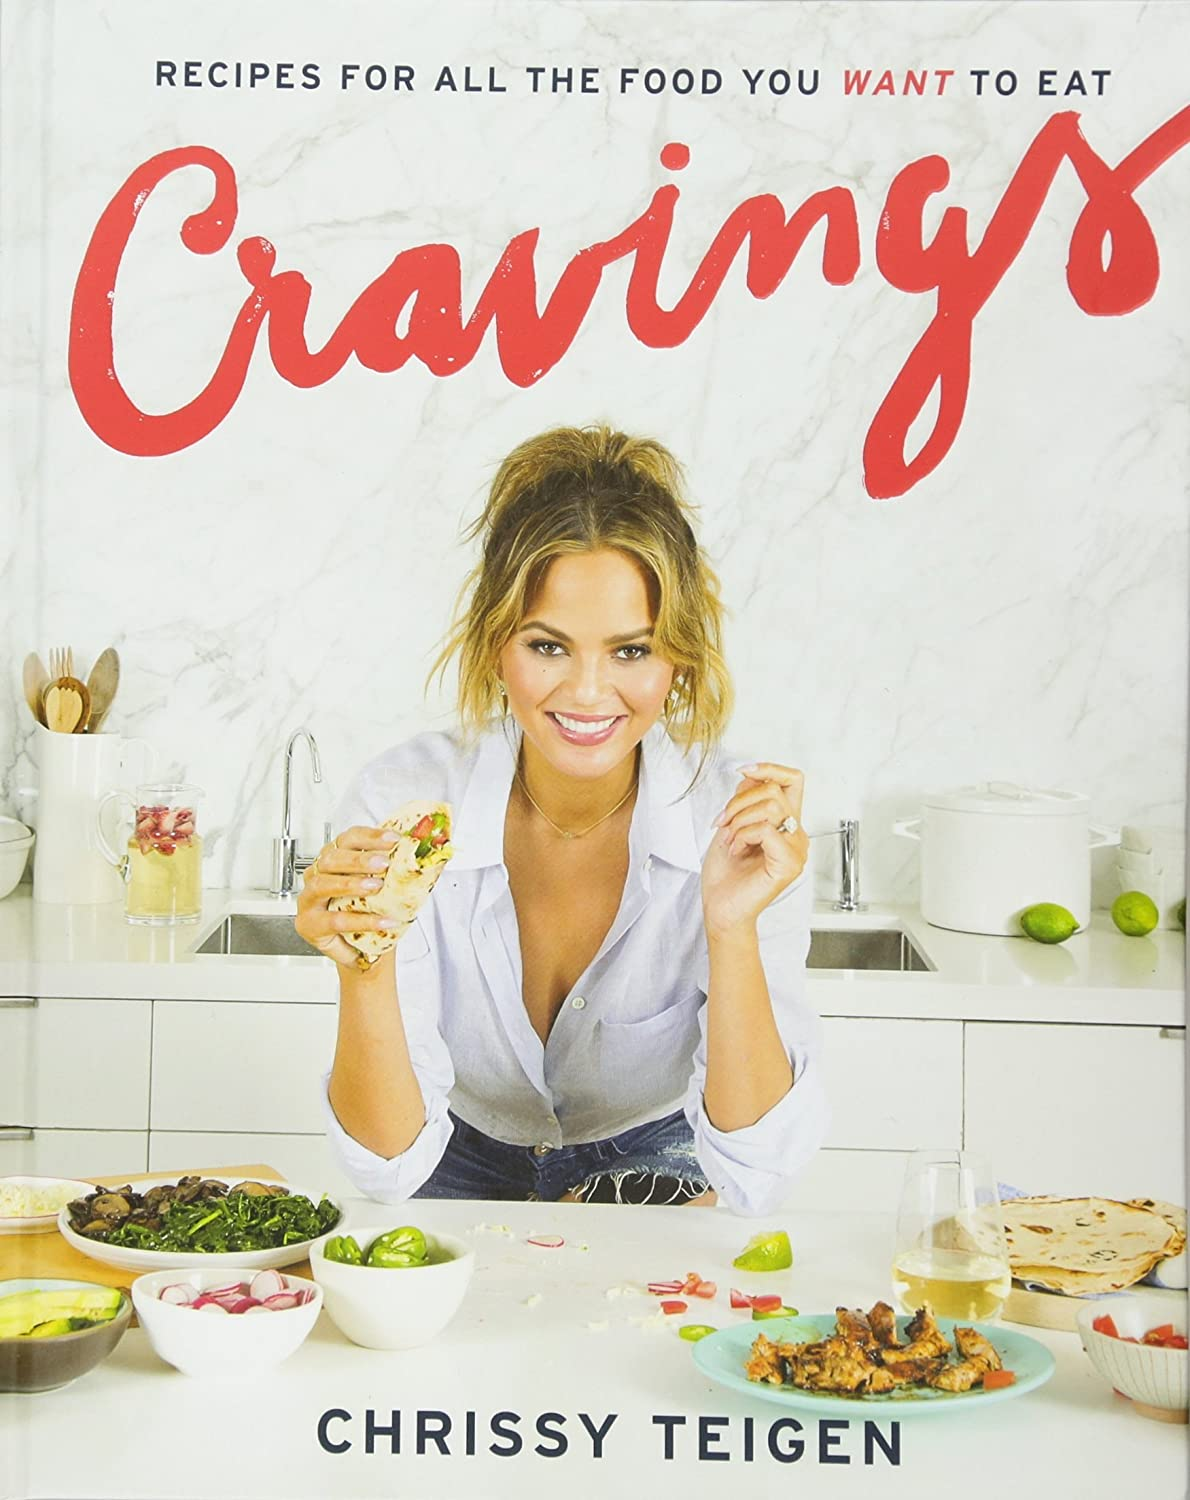 [By Chrissy Teigen] Cravings: Recipes for All the Food You Want to Eat (Hardcover)【2018】by Chrissy Teigen (Author) (Hardcover)